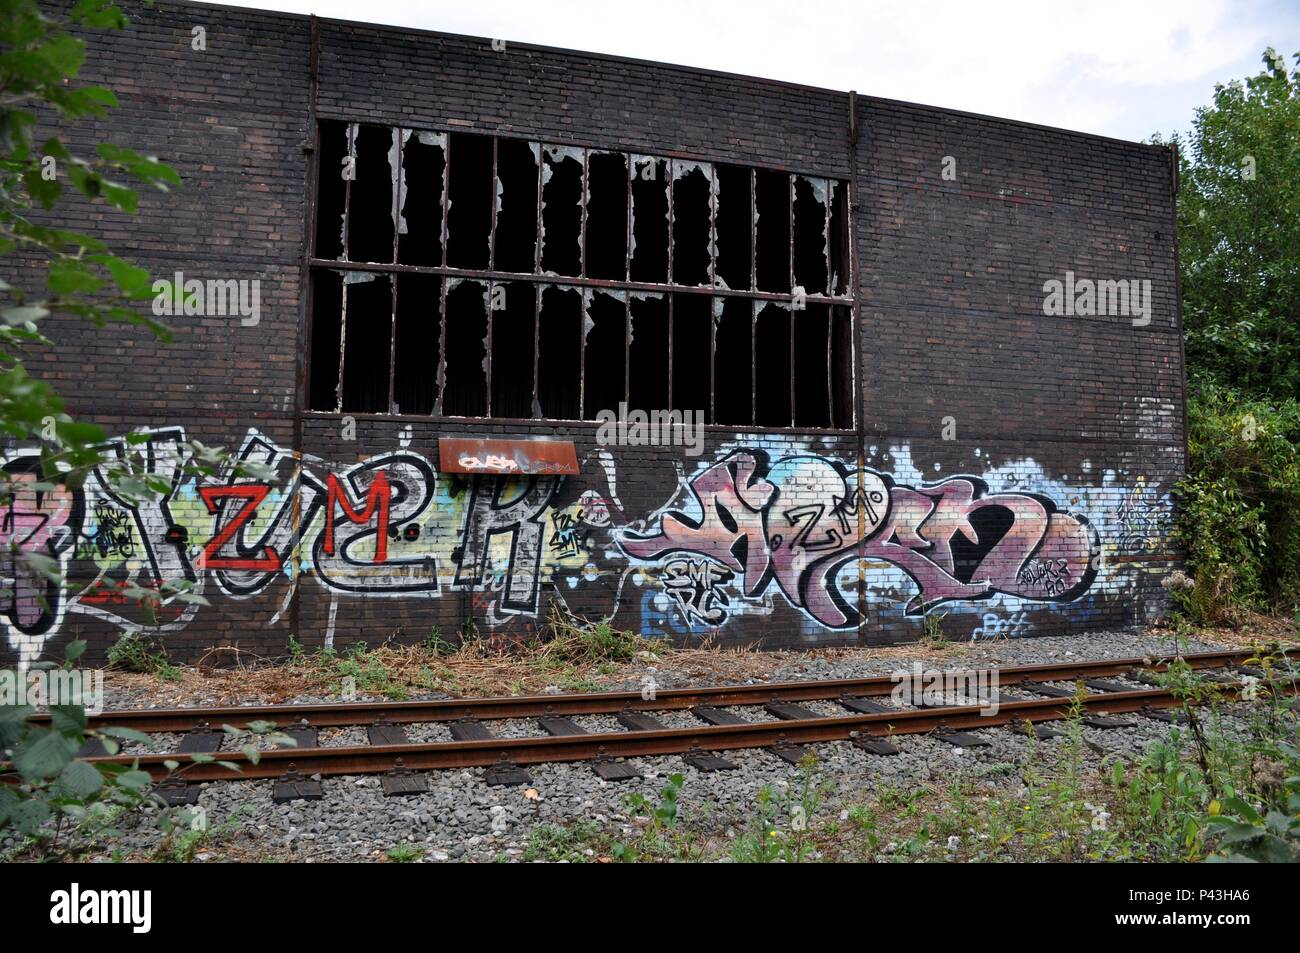 Graffiti on wall of coking plant on 16.09.2016 in Essen - Germany. | usage worldwide - Stock Image